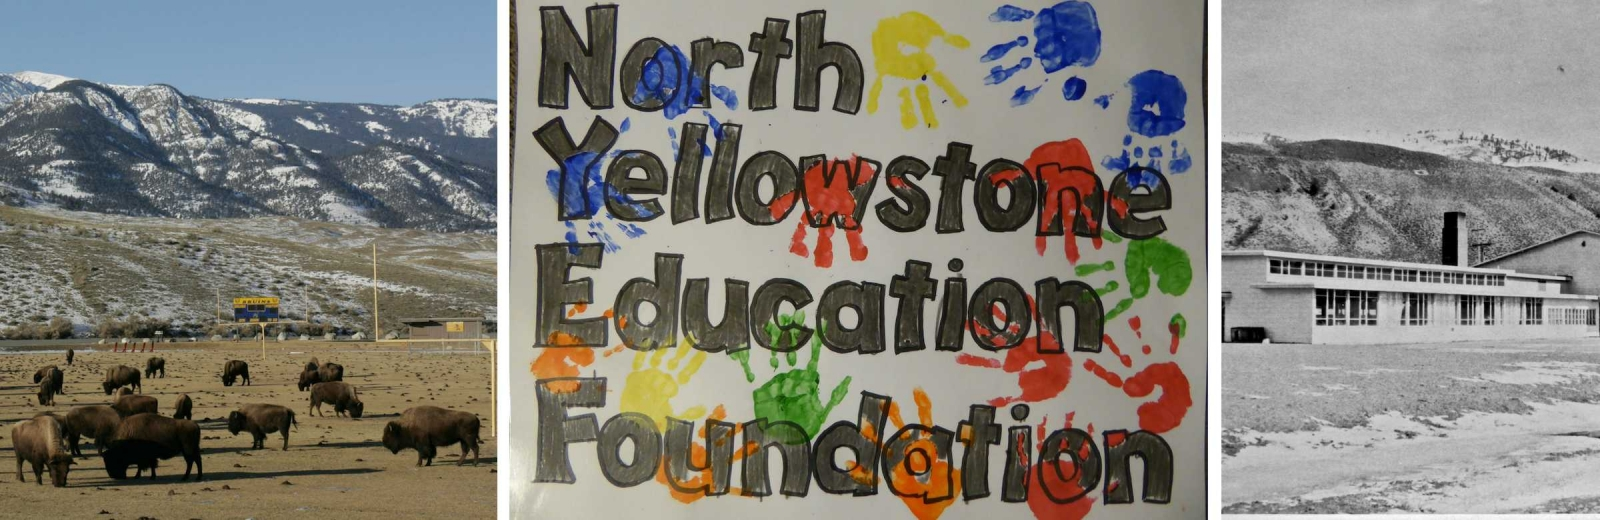 North Yellowstone Education Foundation